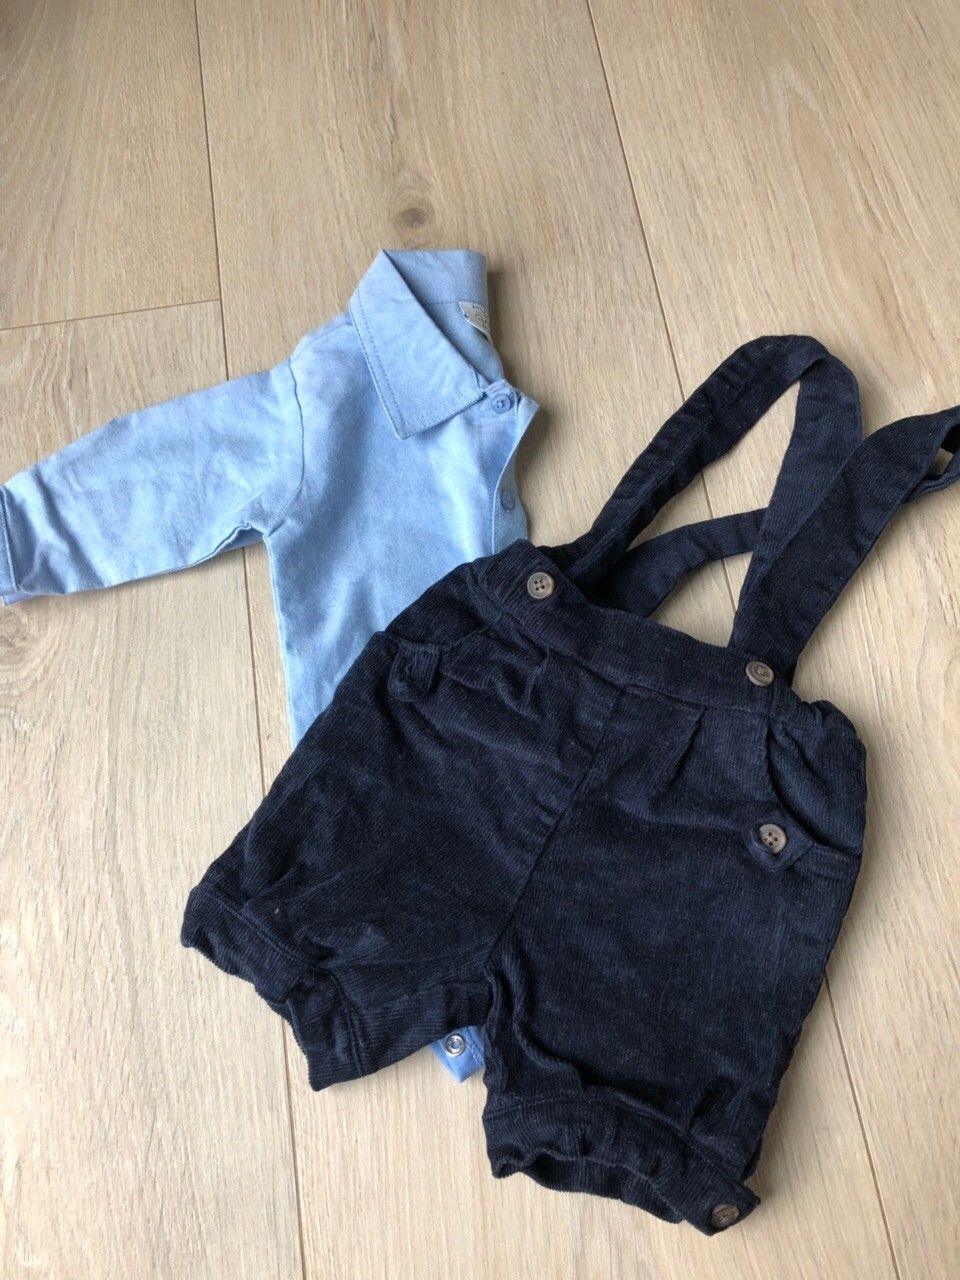 969ab506a25 Shorts og skjorte body Hust and Claire str 62 | FINN.no